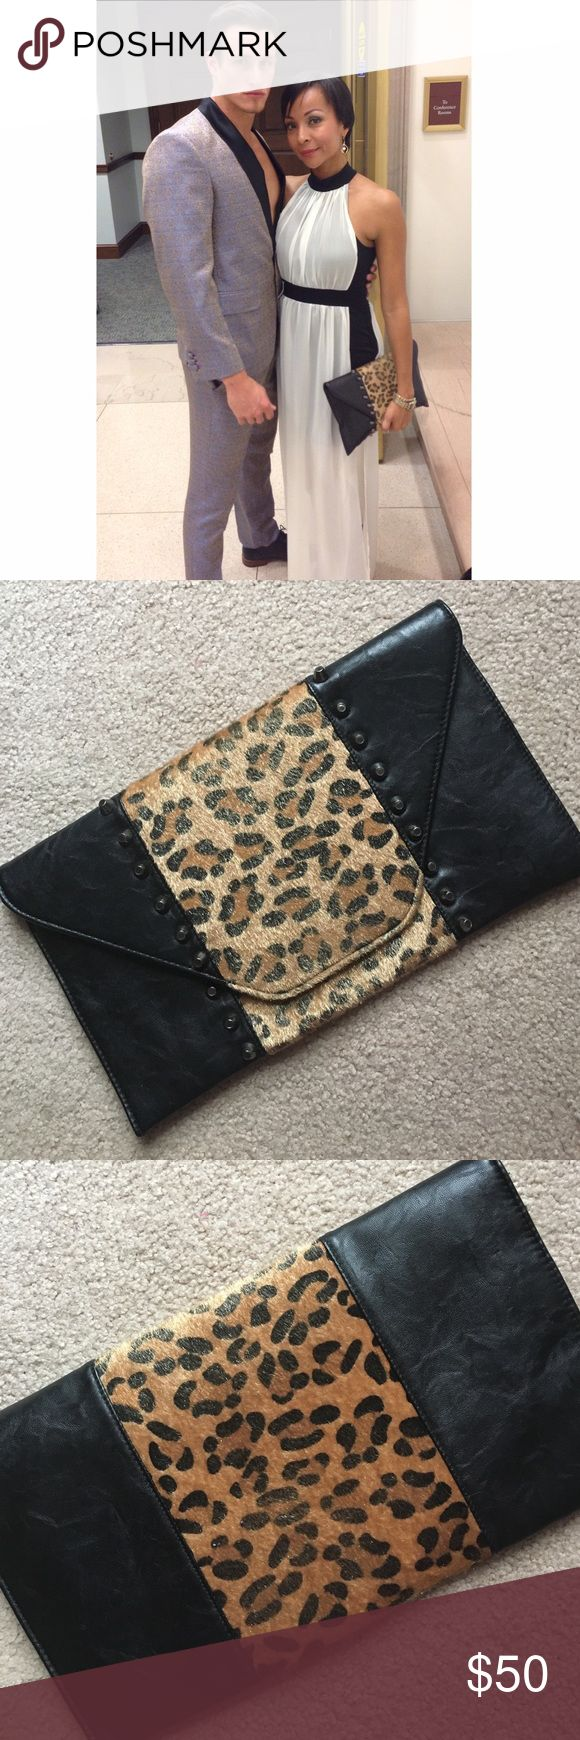 """Animal Print Leather Studded Clutch This amazing piece will spice up any outfit! Leather and faux fur construction with studs embellishment in front,  flap and zip closure, and pockets for coins and cellphone inside. Fully lined, 14"""" x 8"""" Bags Clutches & Wristlets"""